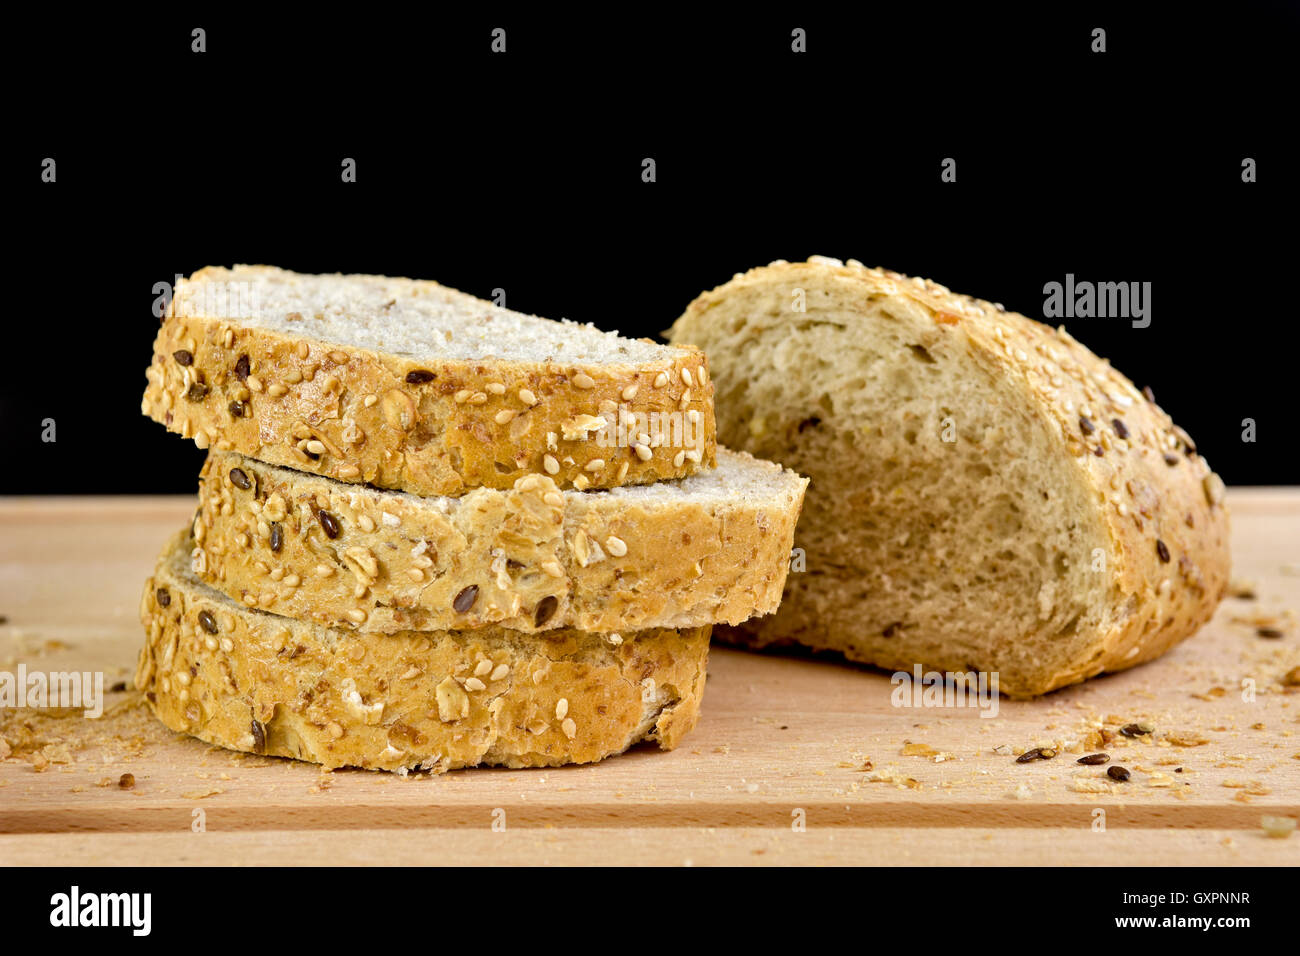 Sliced granary baguette on chopping board, against a black background - Stock Image